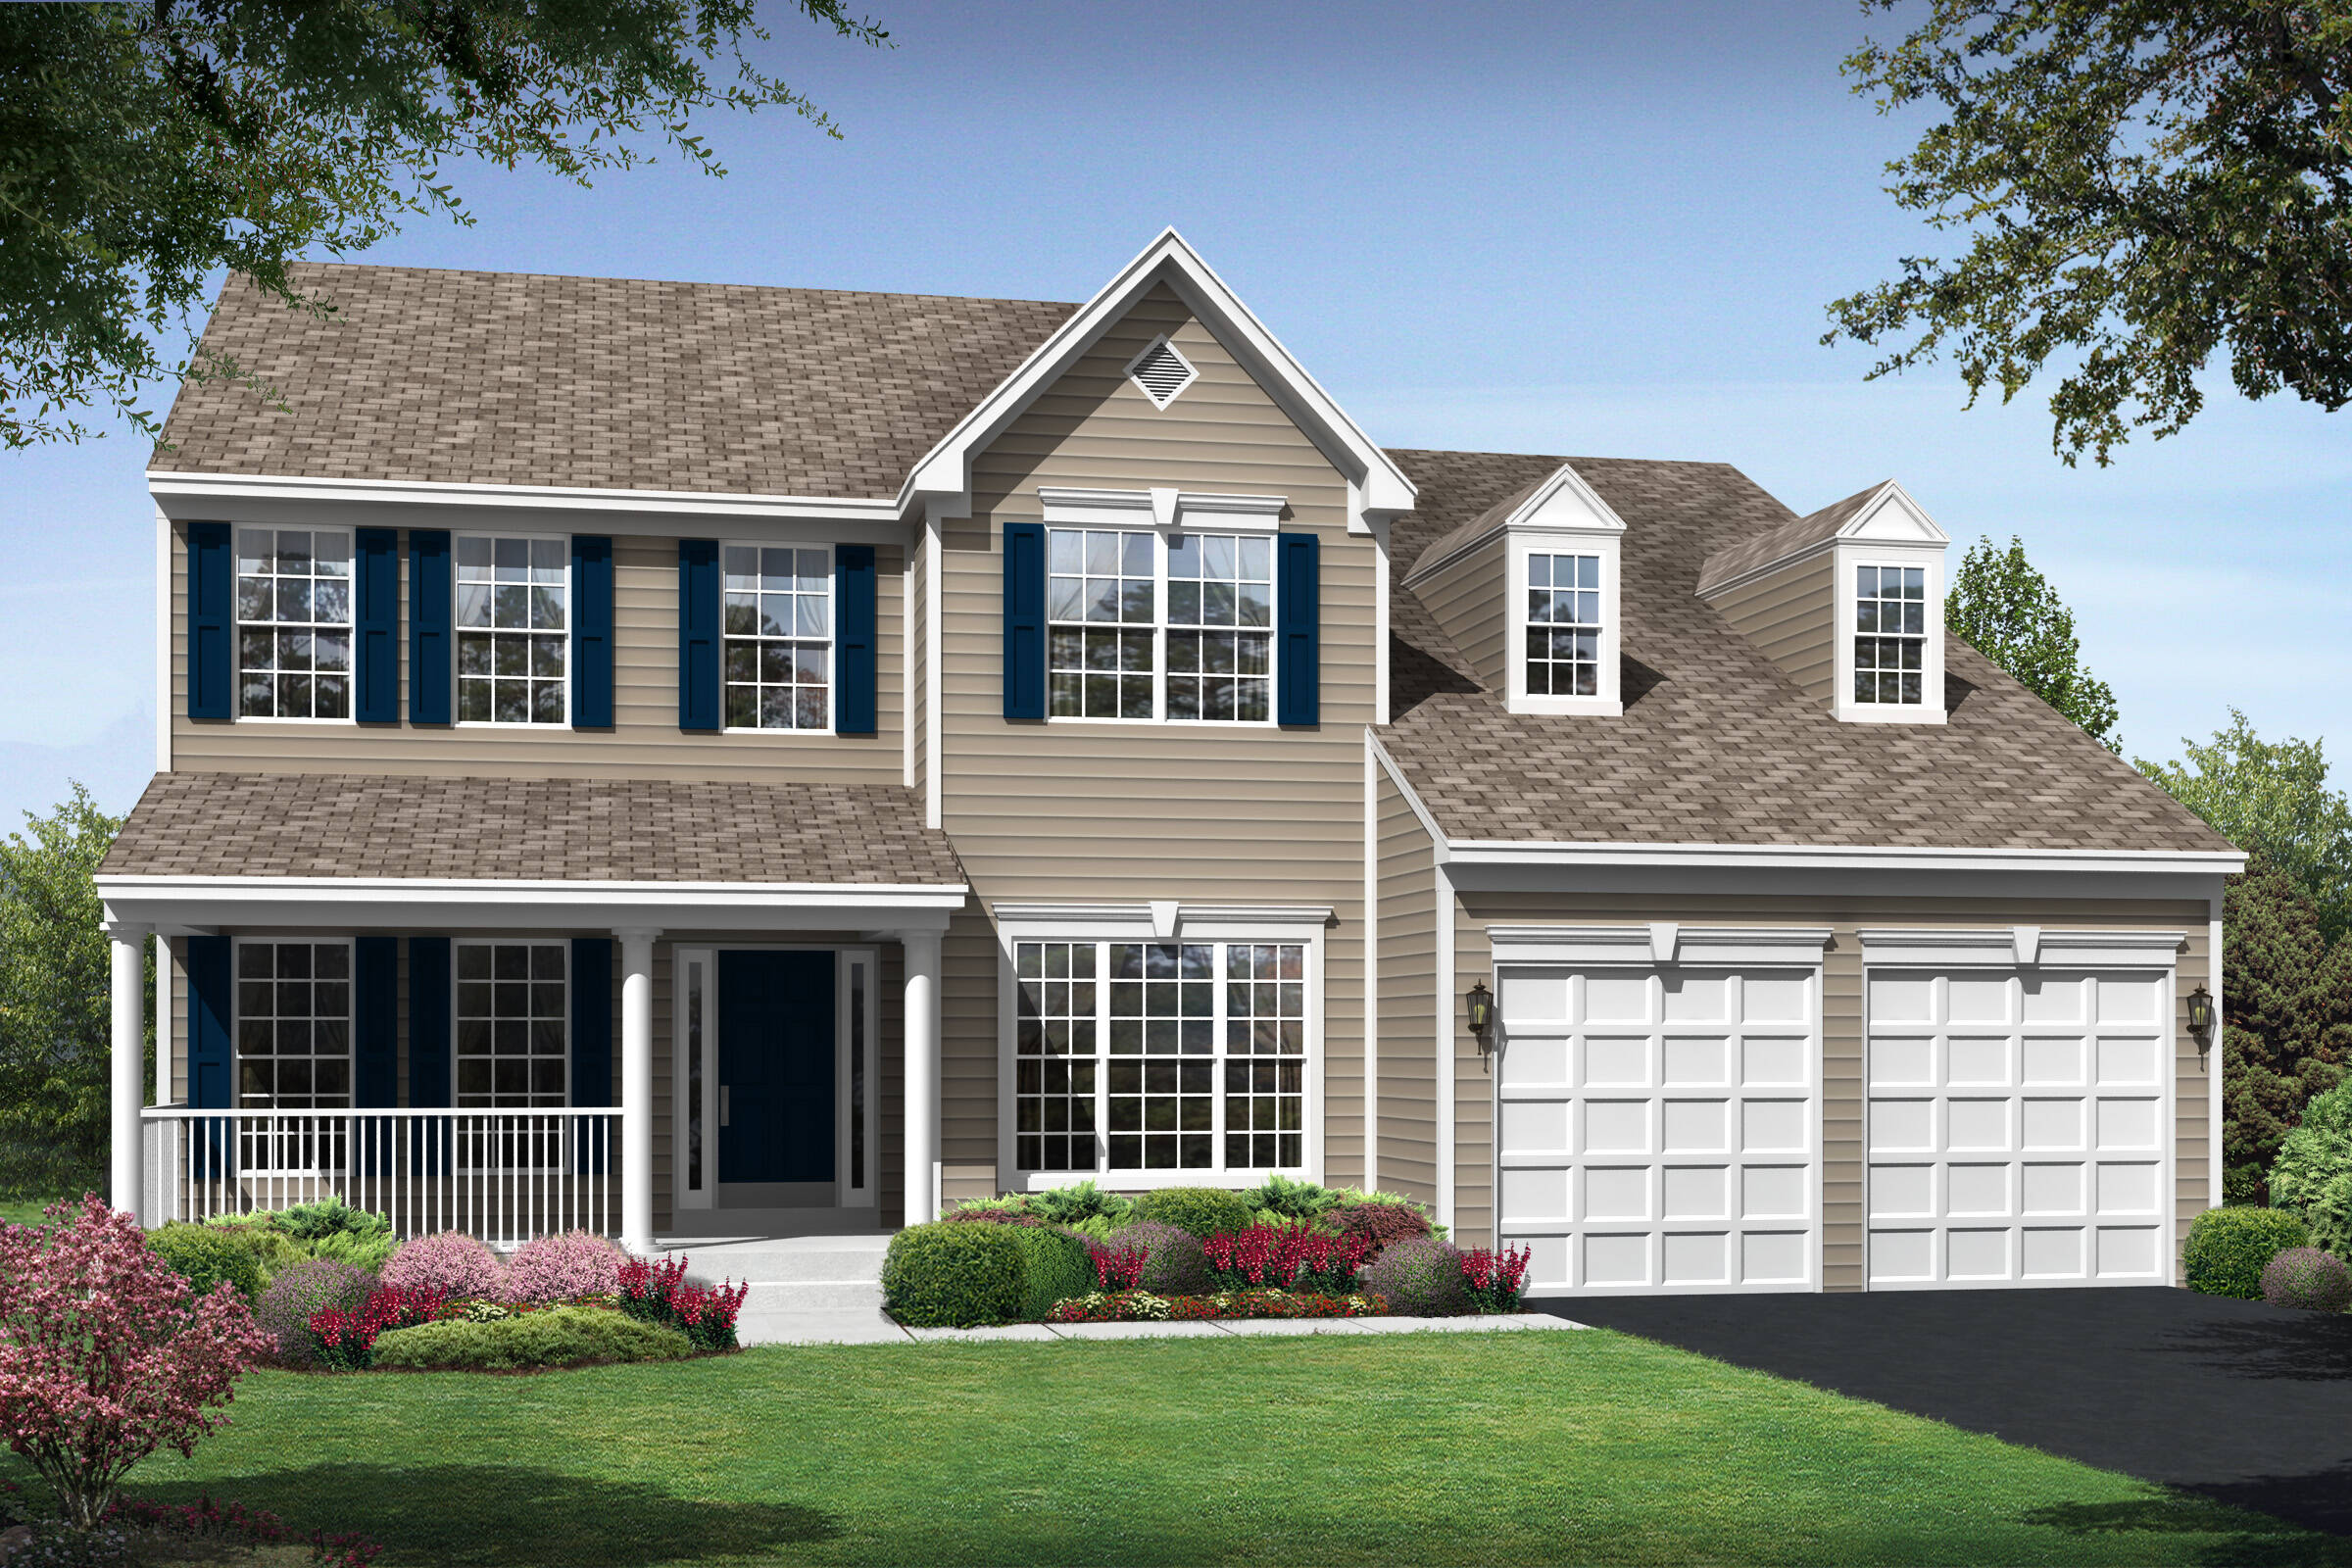 alaska country new homes at reserves at leeland station in virginia